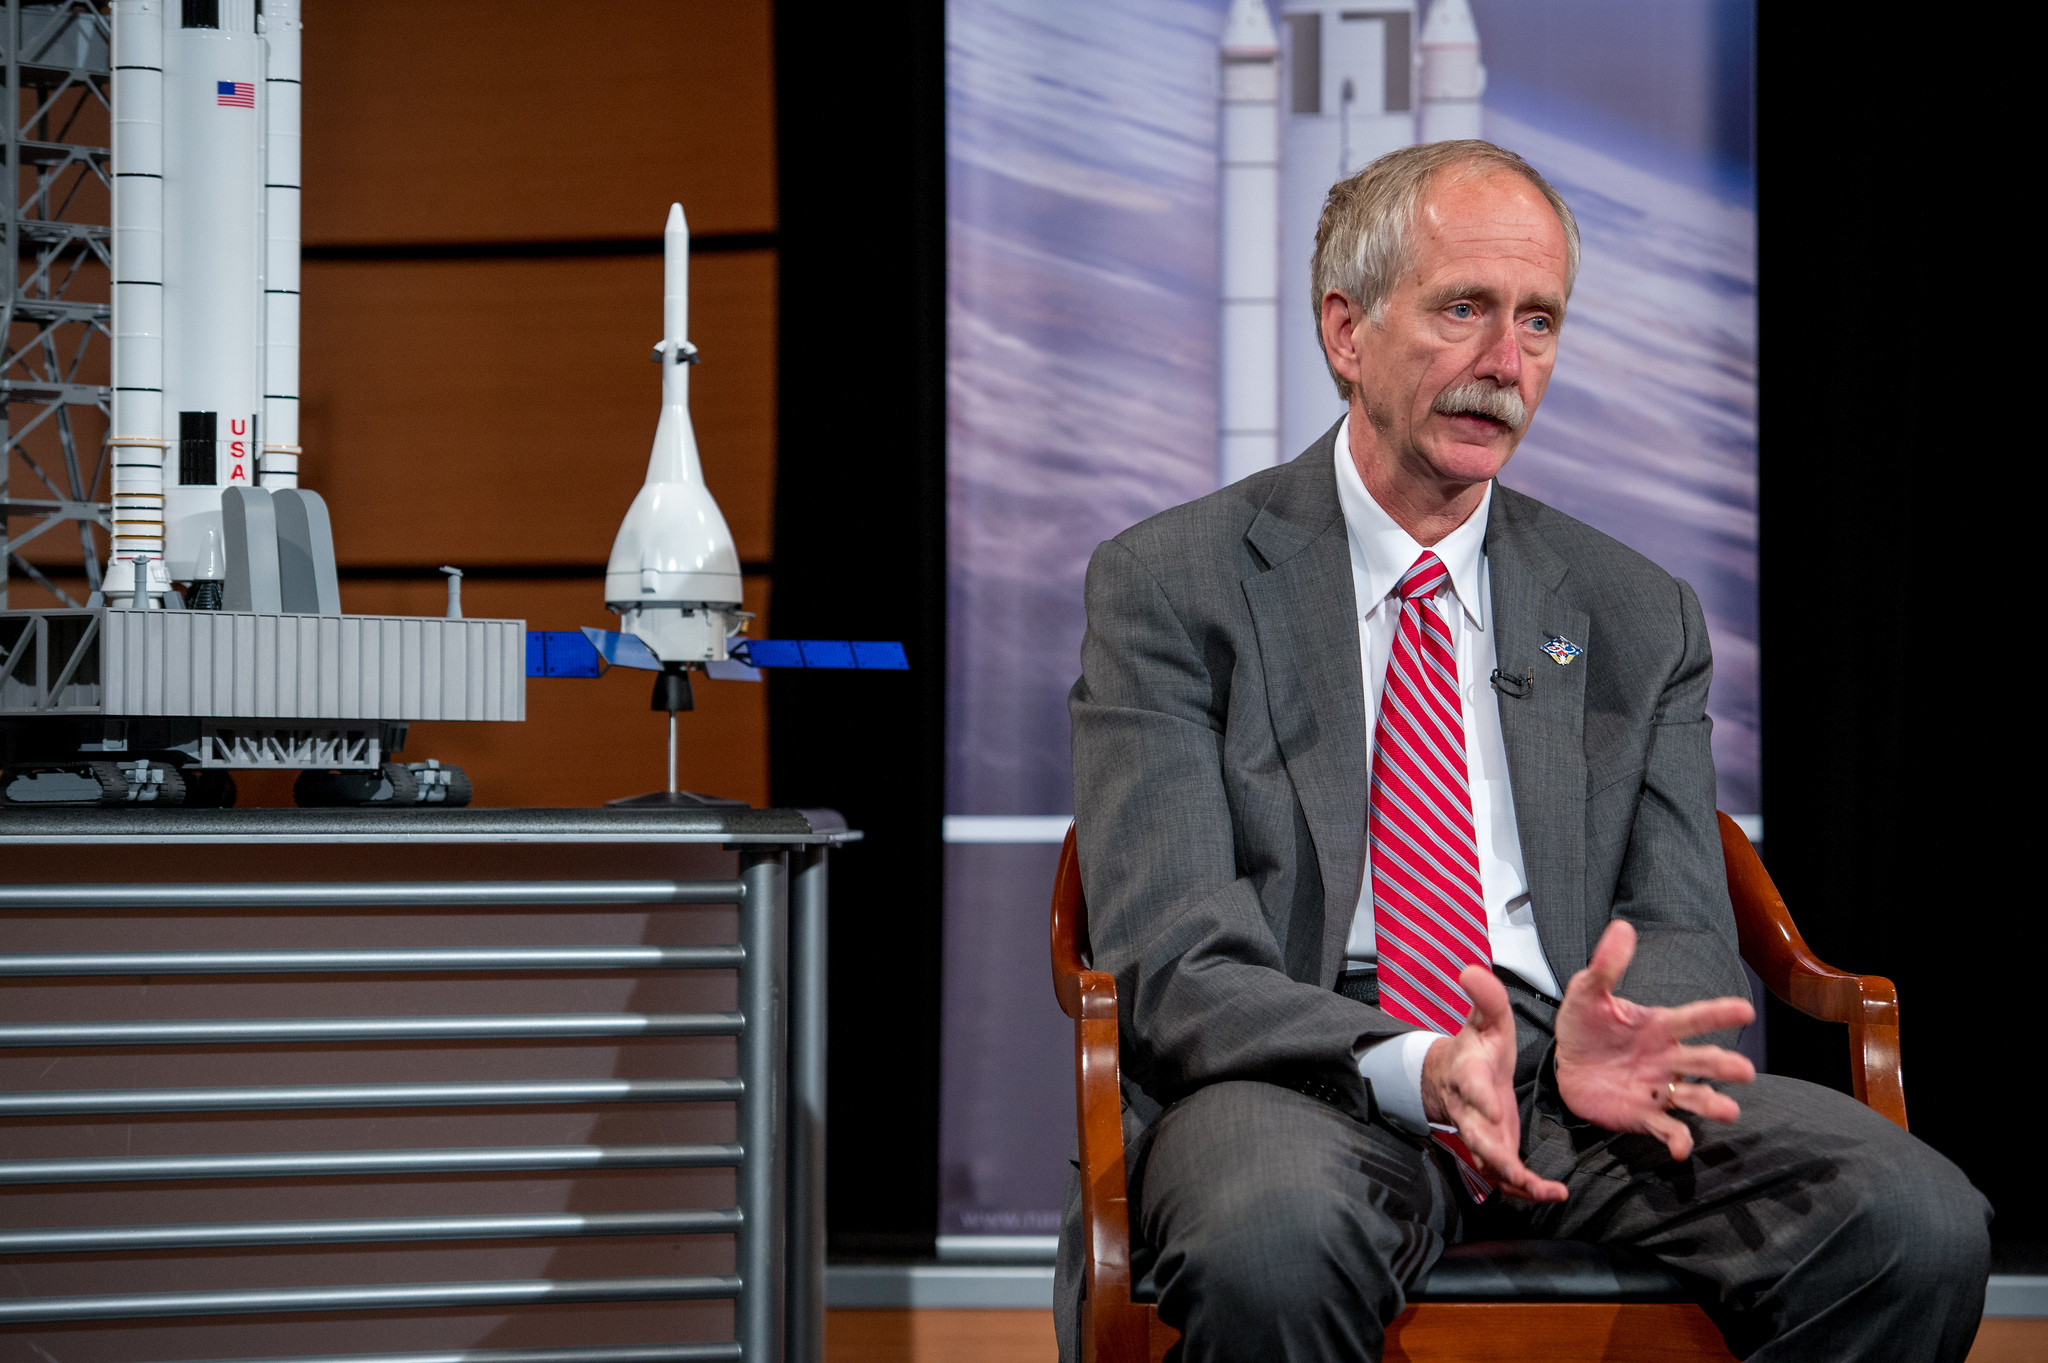 nasa not ready to update mars mission architecture william gerstenmaier nasa associate administrator for human exploration and operations gestures while speaking at